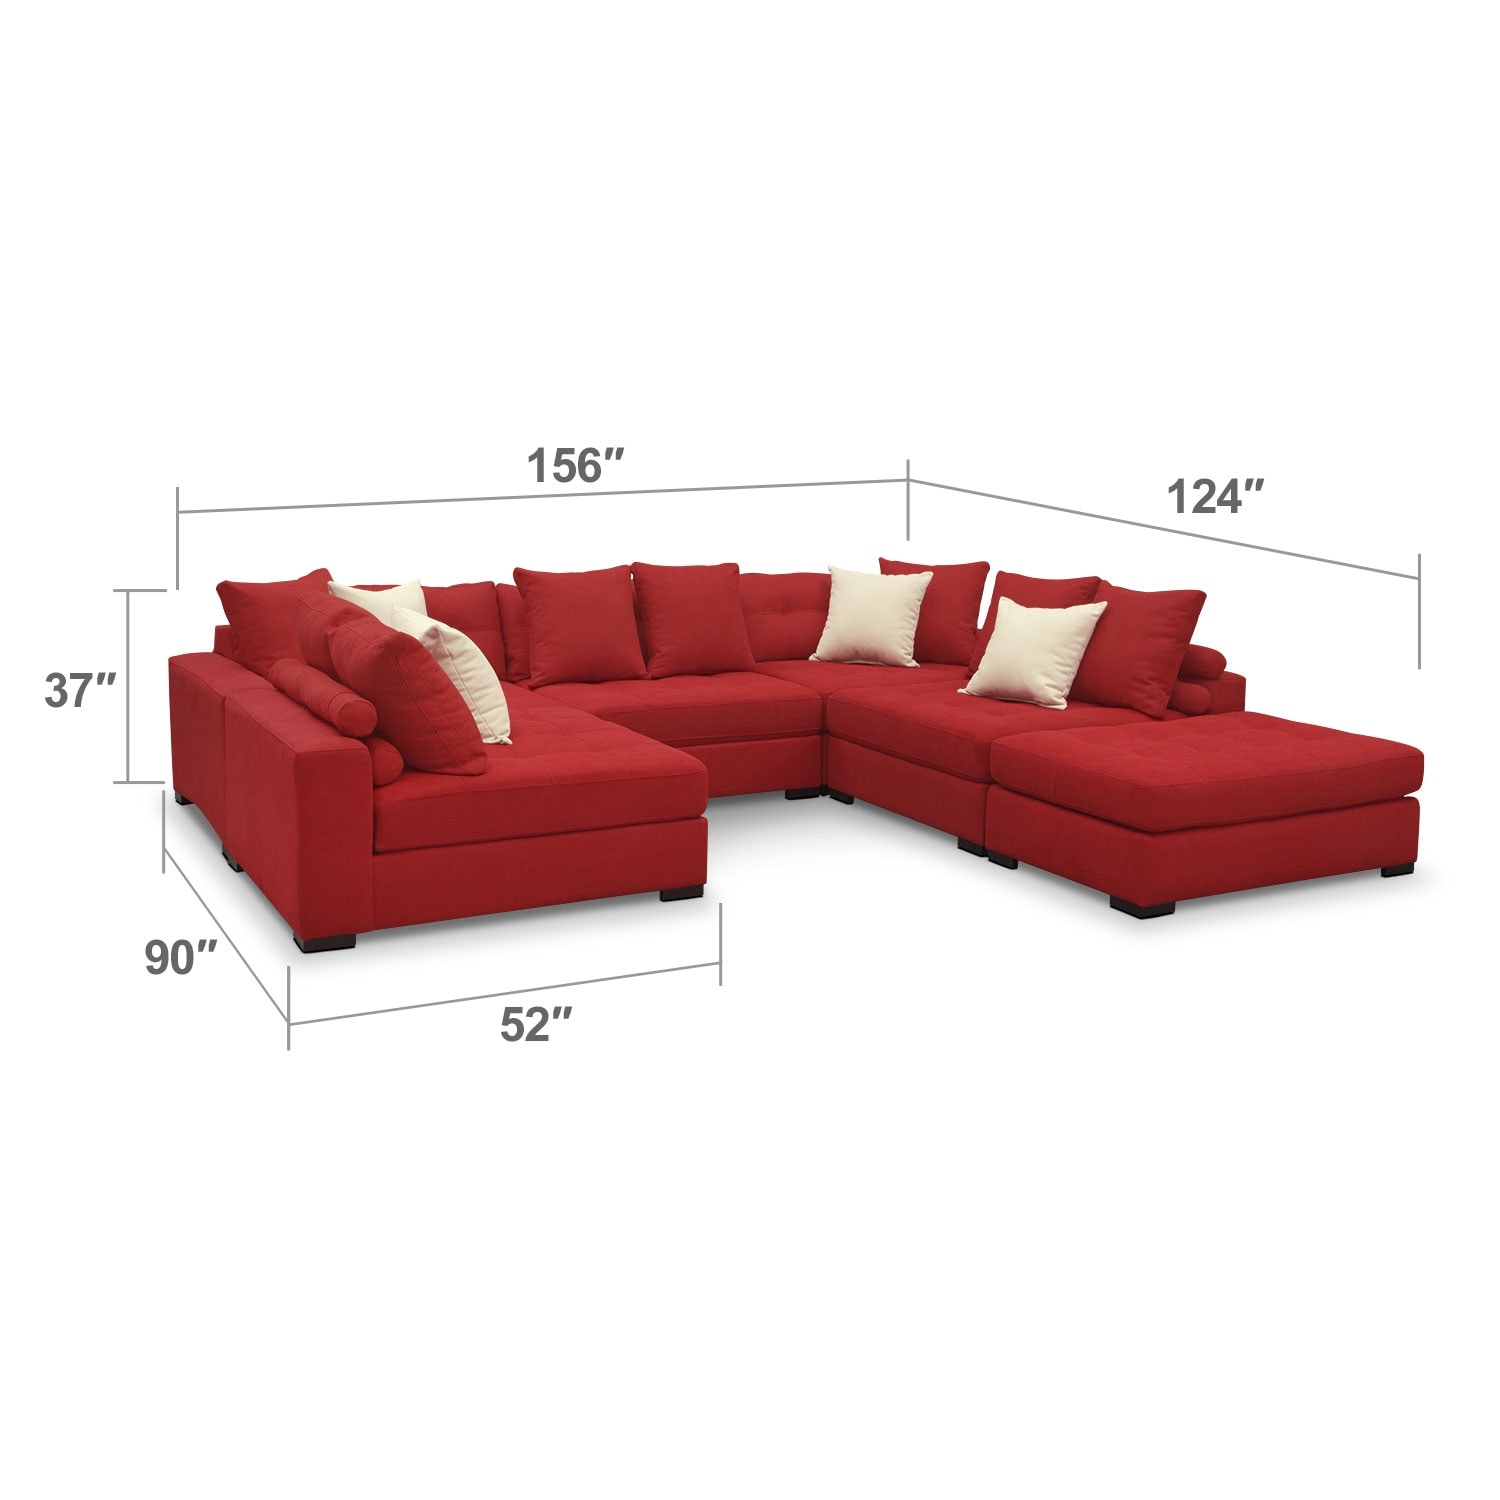 Living Room Furniture - Venti 6-Piece Sectional - Red